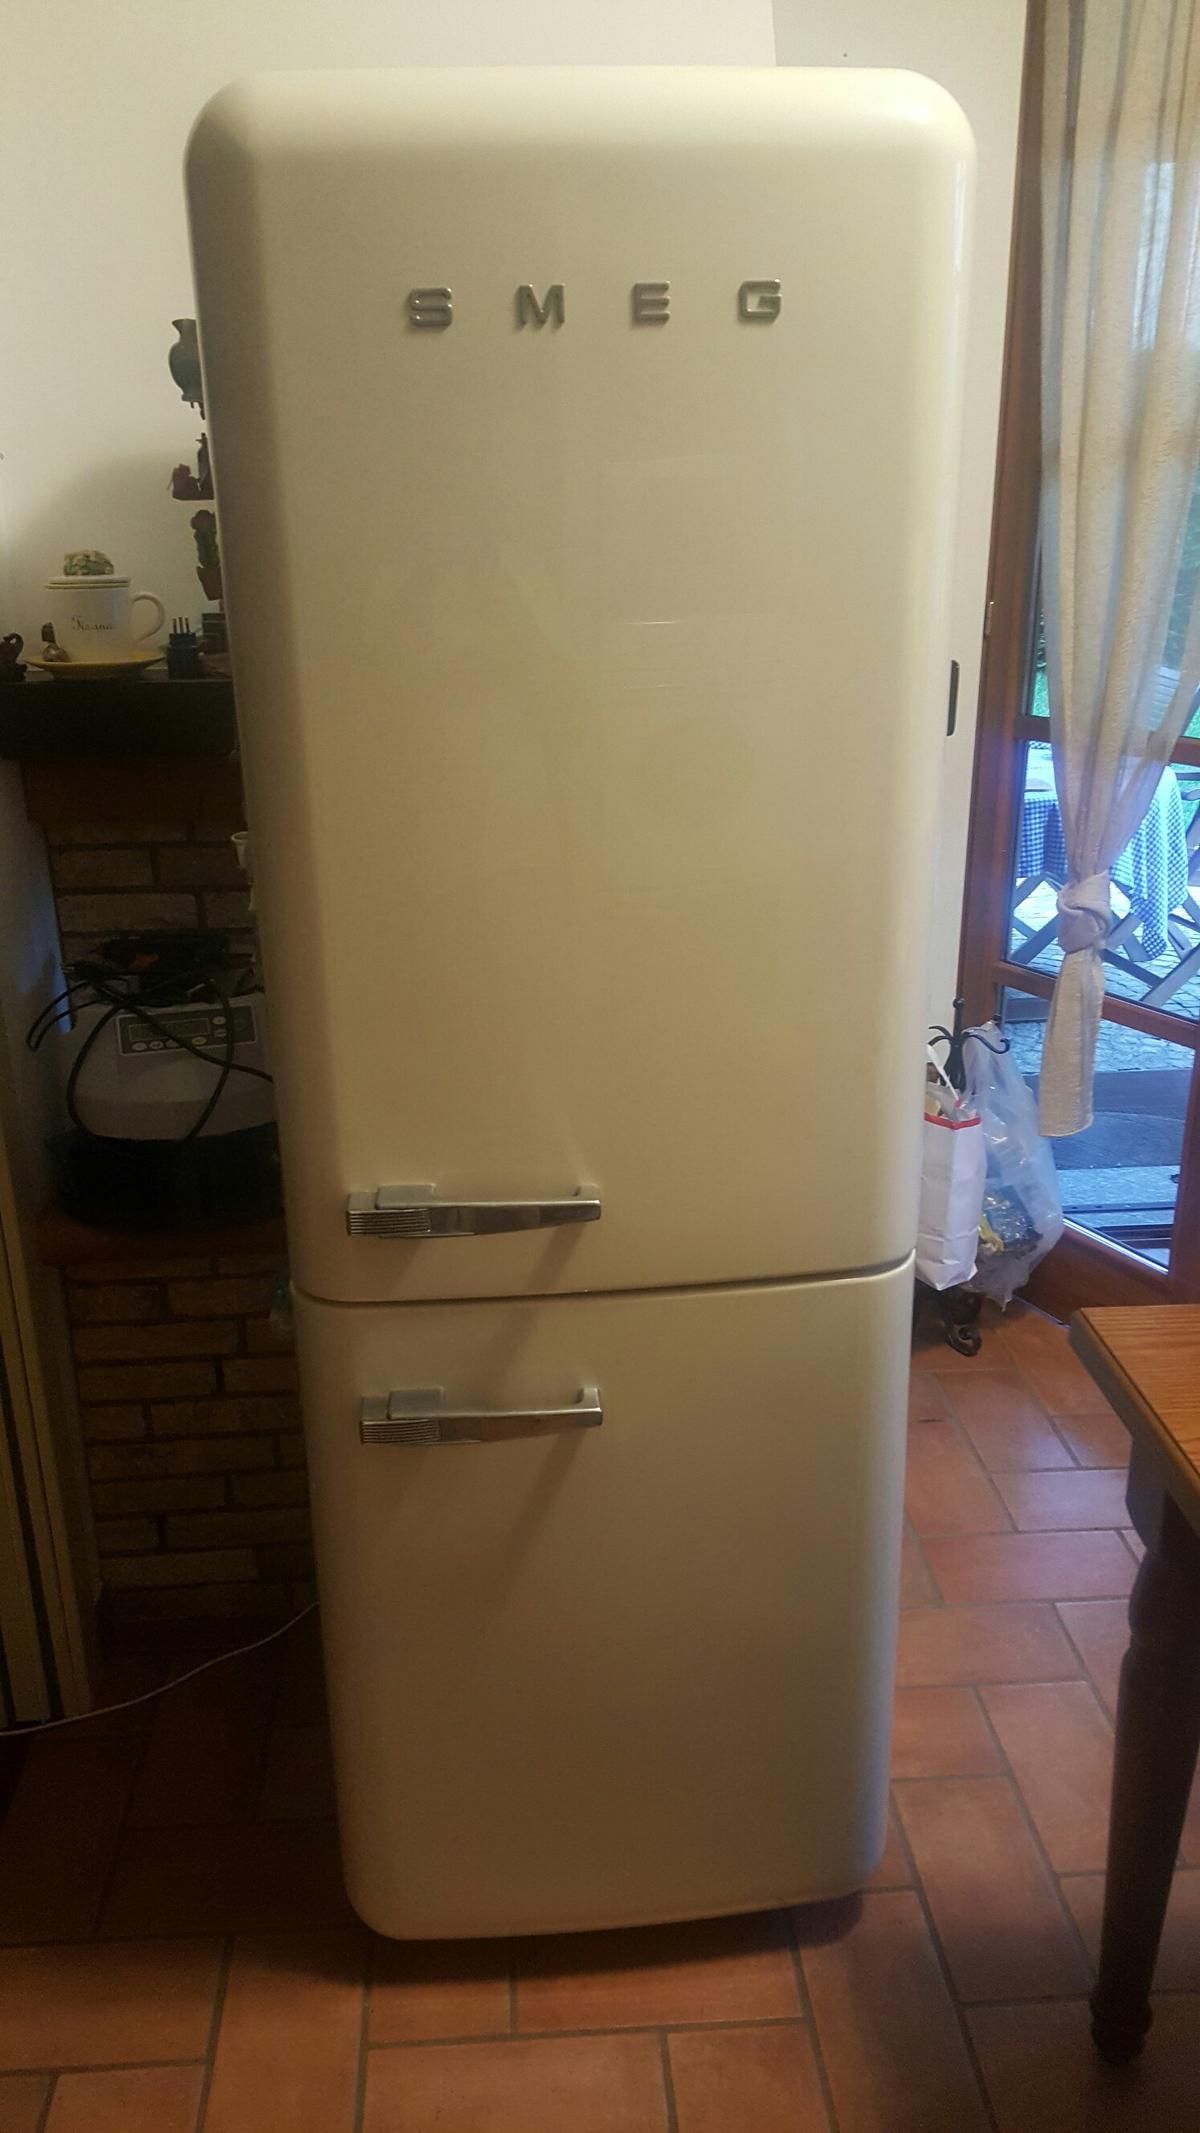 Frigorifero Smeg modello Fab32 in 20090 Segrate for €200.00 ...